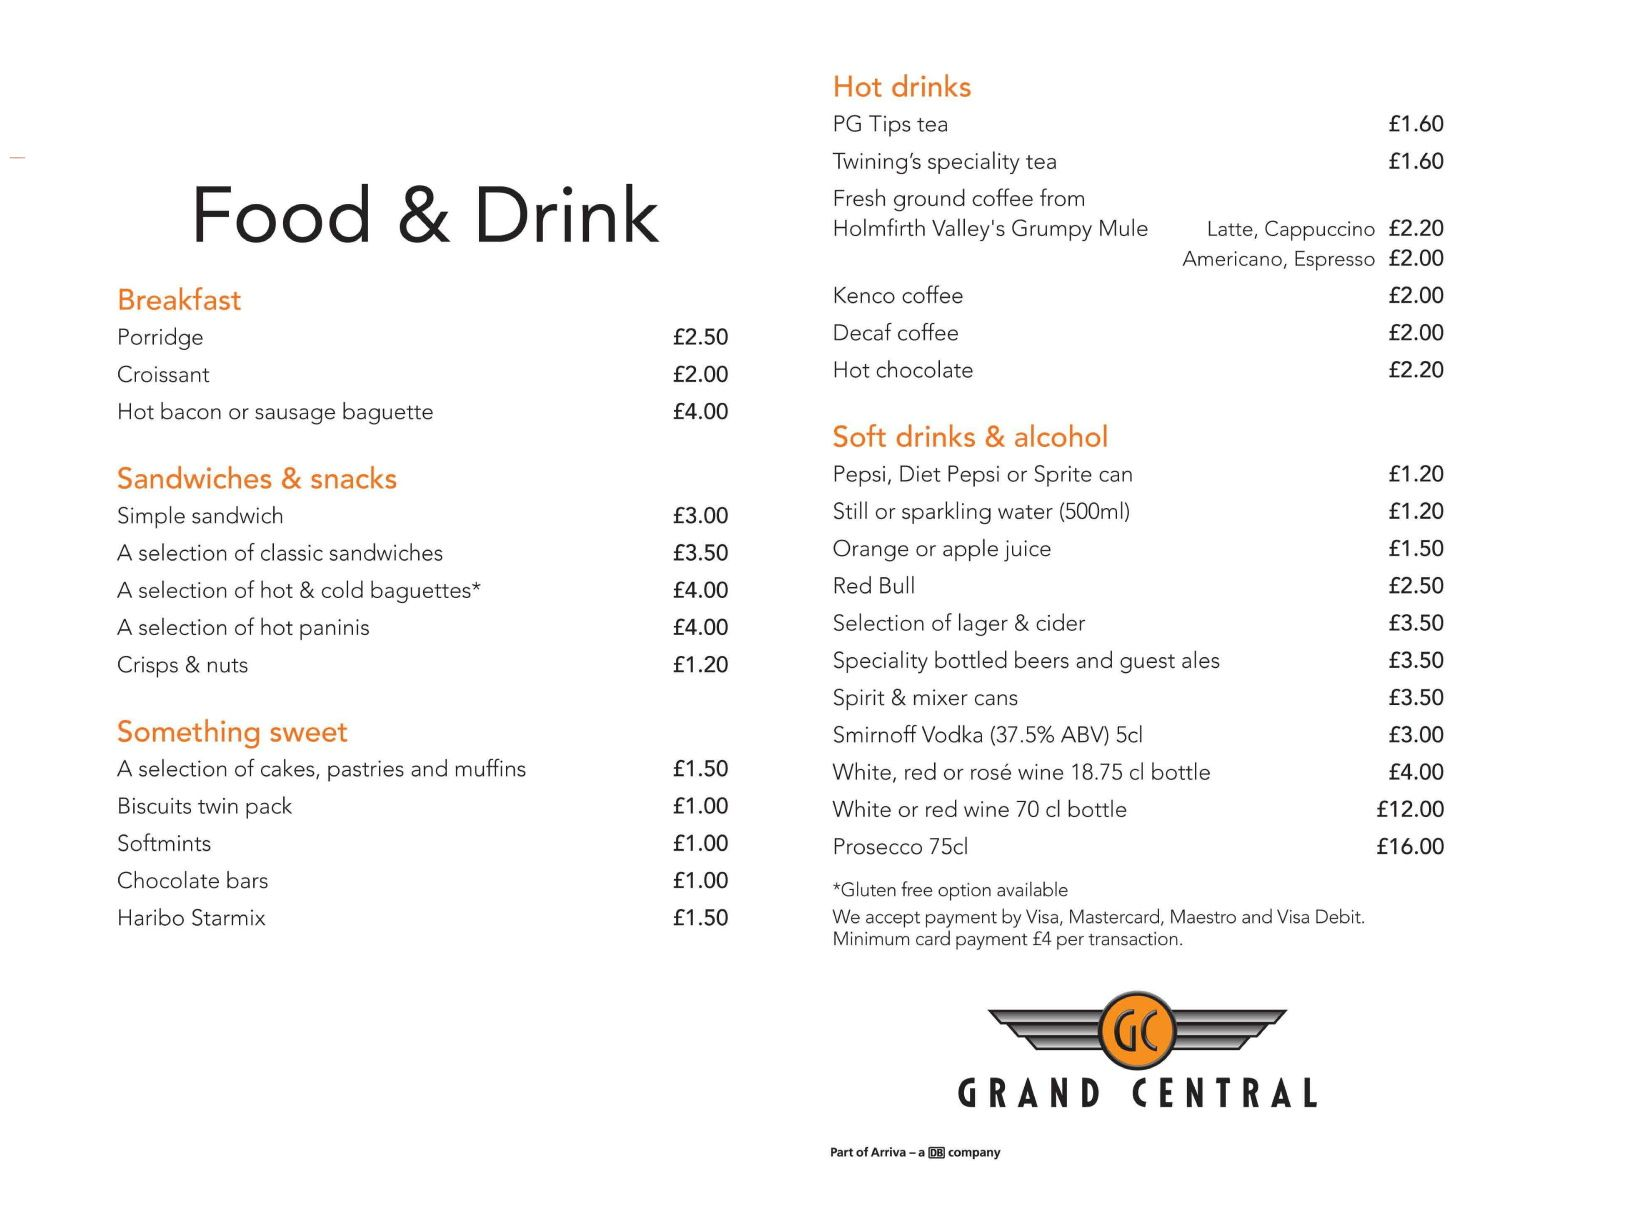 Image showing a sample of the Grand Central food & drink menu circa 2013.